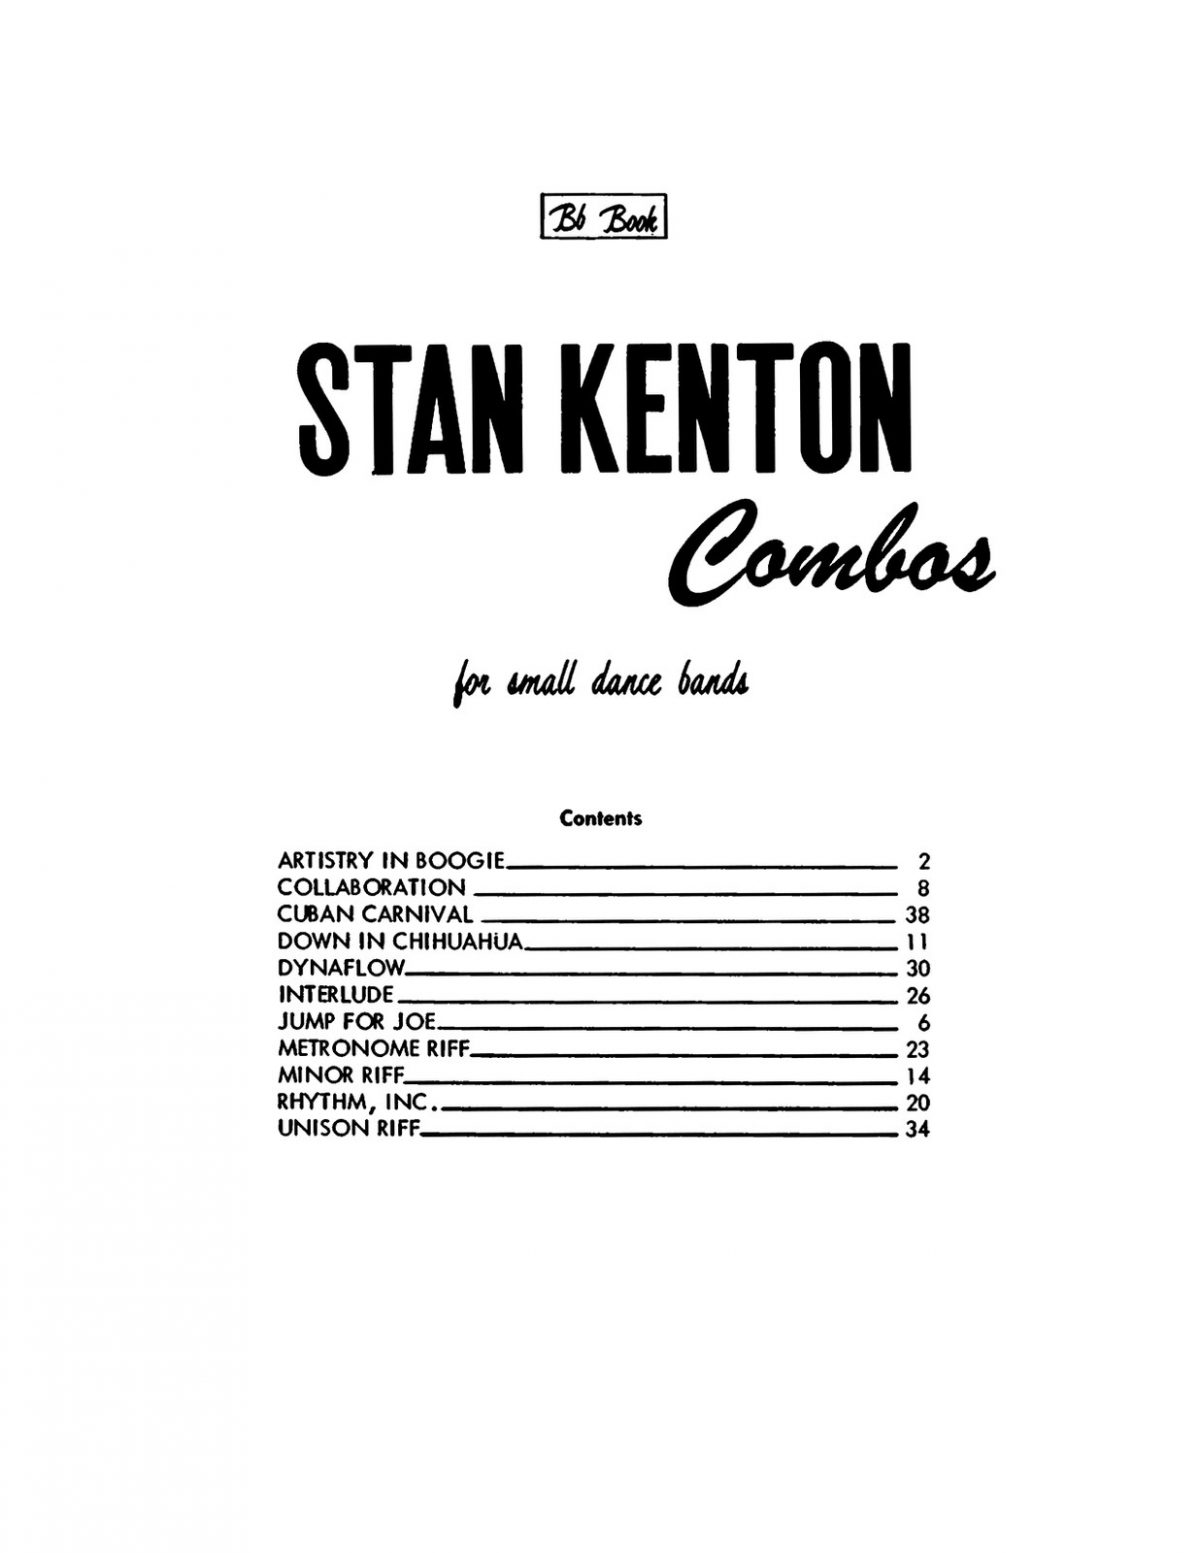 Kenton, Combo Orks for Dance Bands Bb-p03